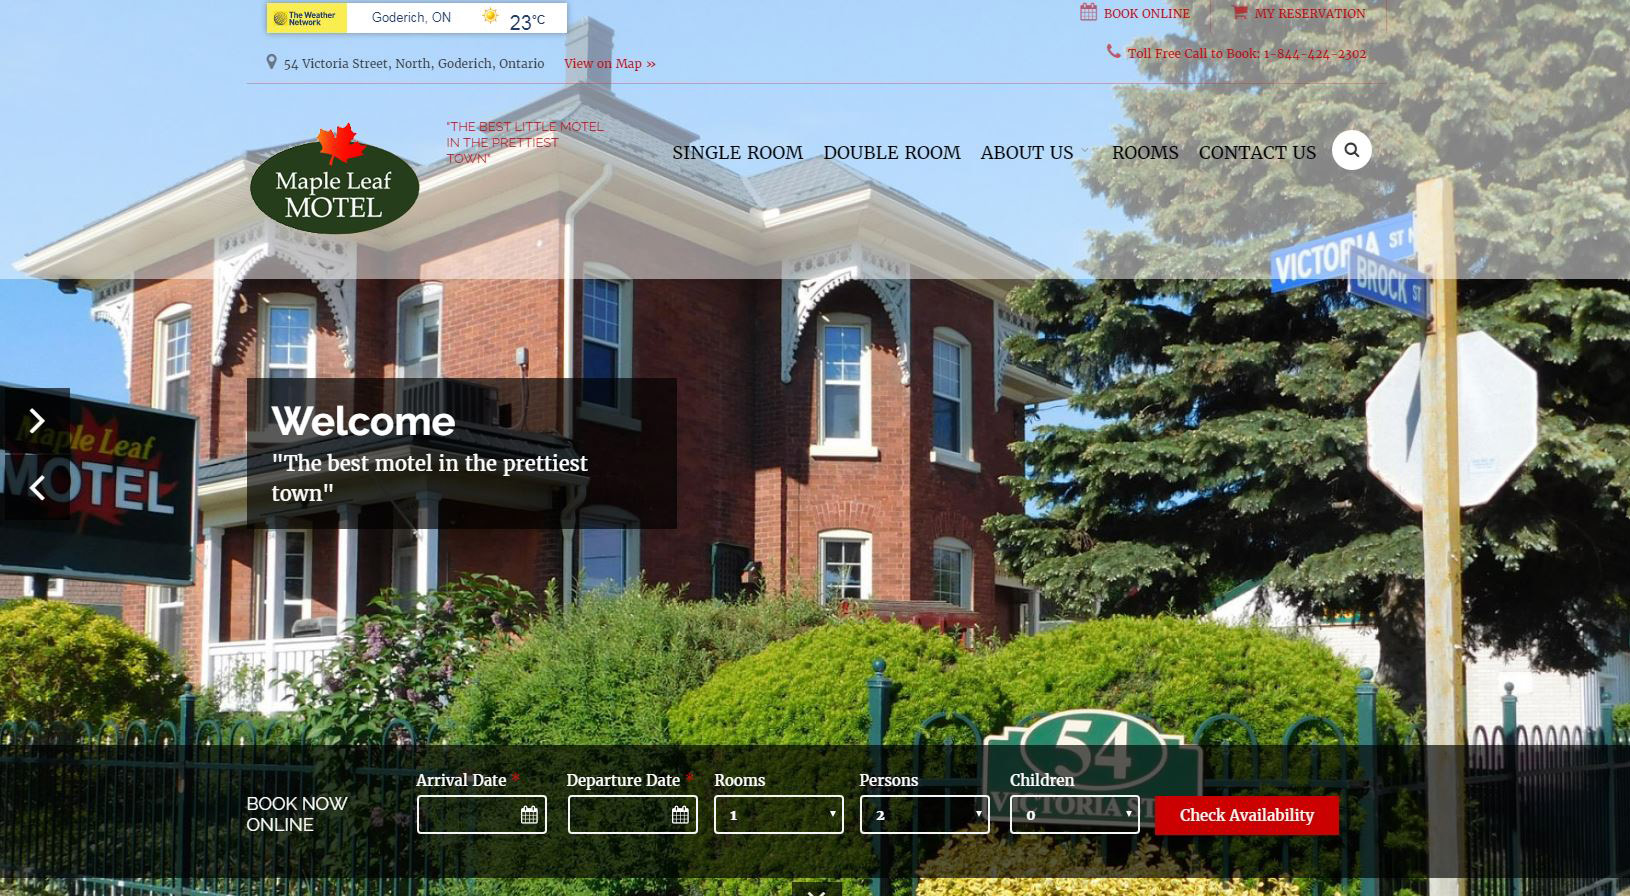 The Maple Leaf Motel in Goderich